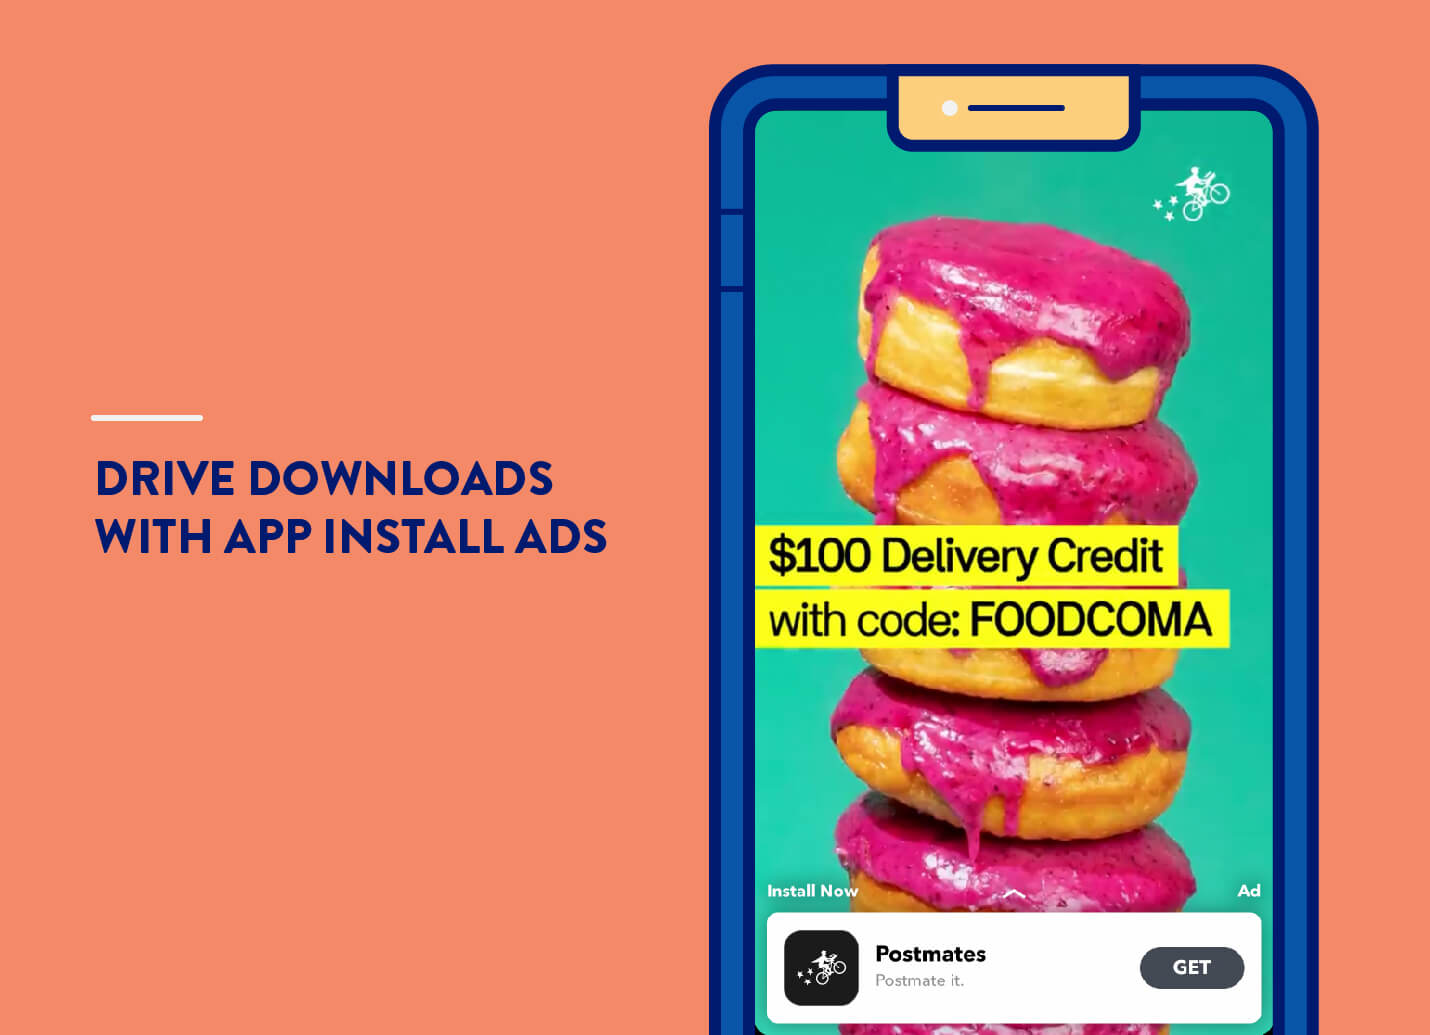 app install ads example from Postmates on snapchat for mobile app marketing strategies